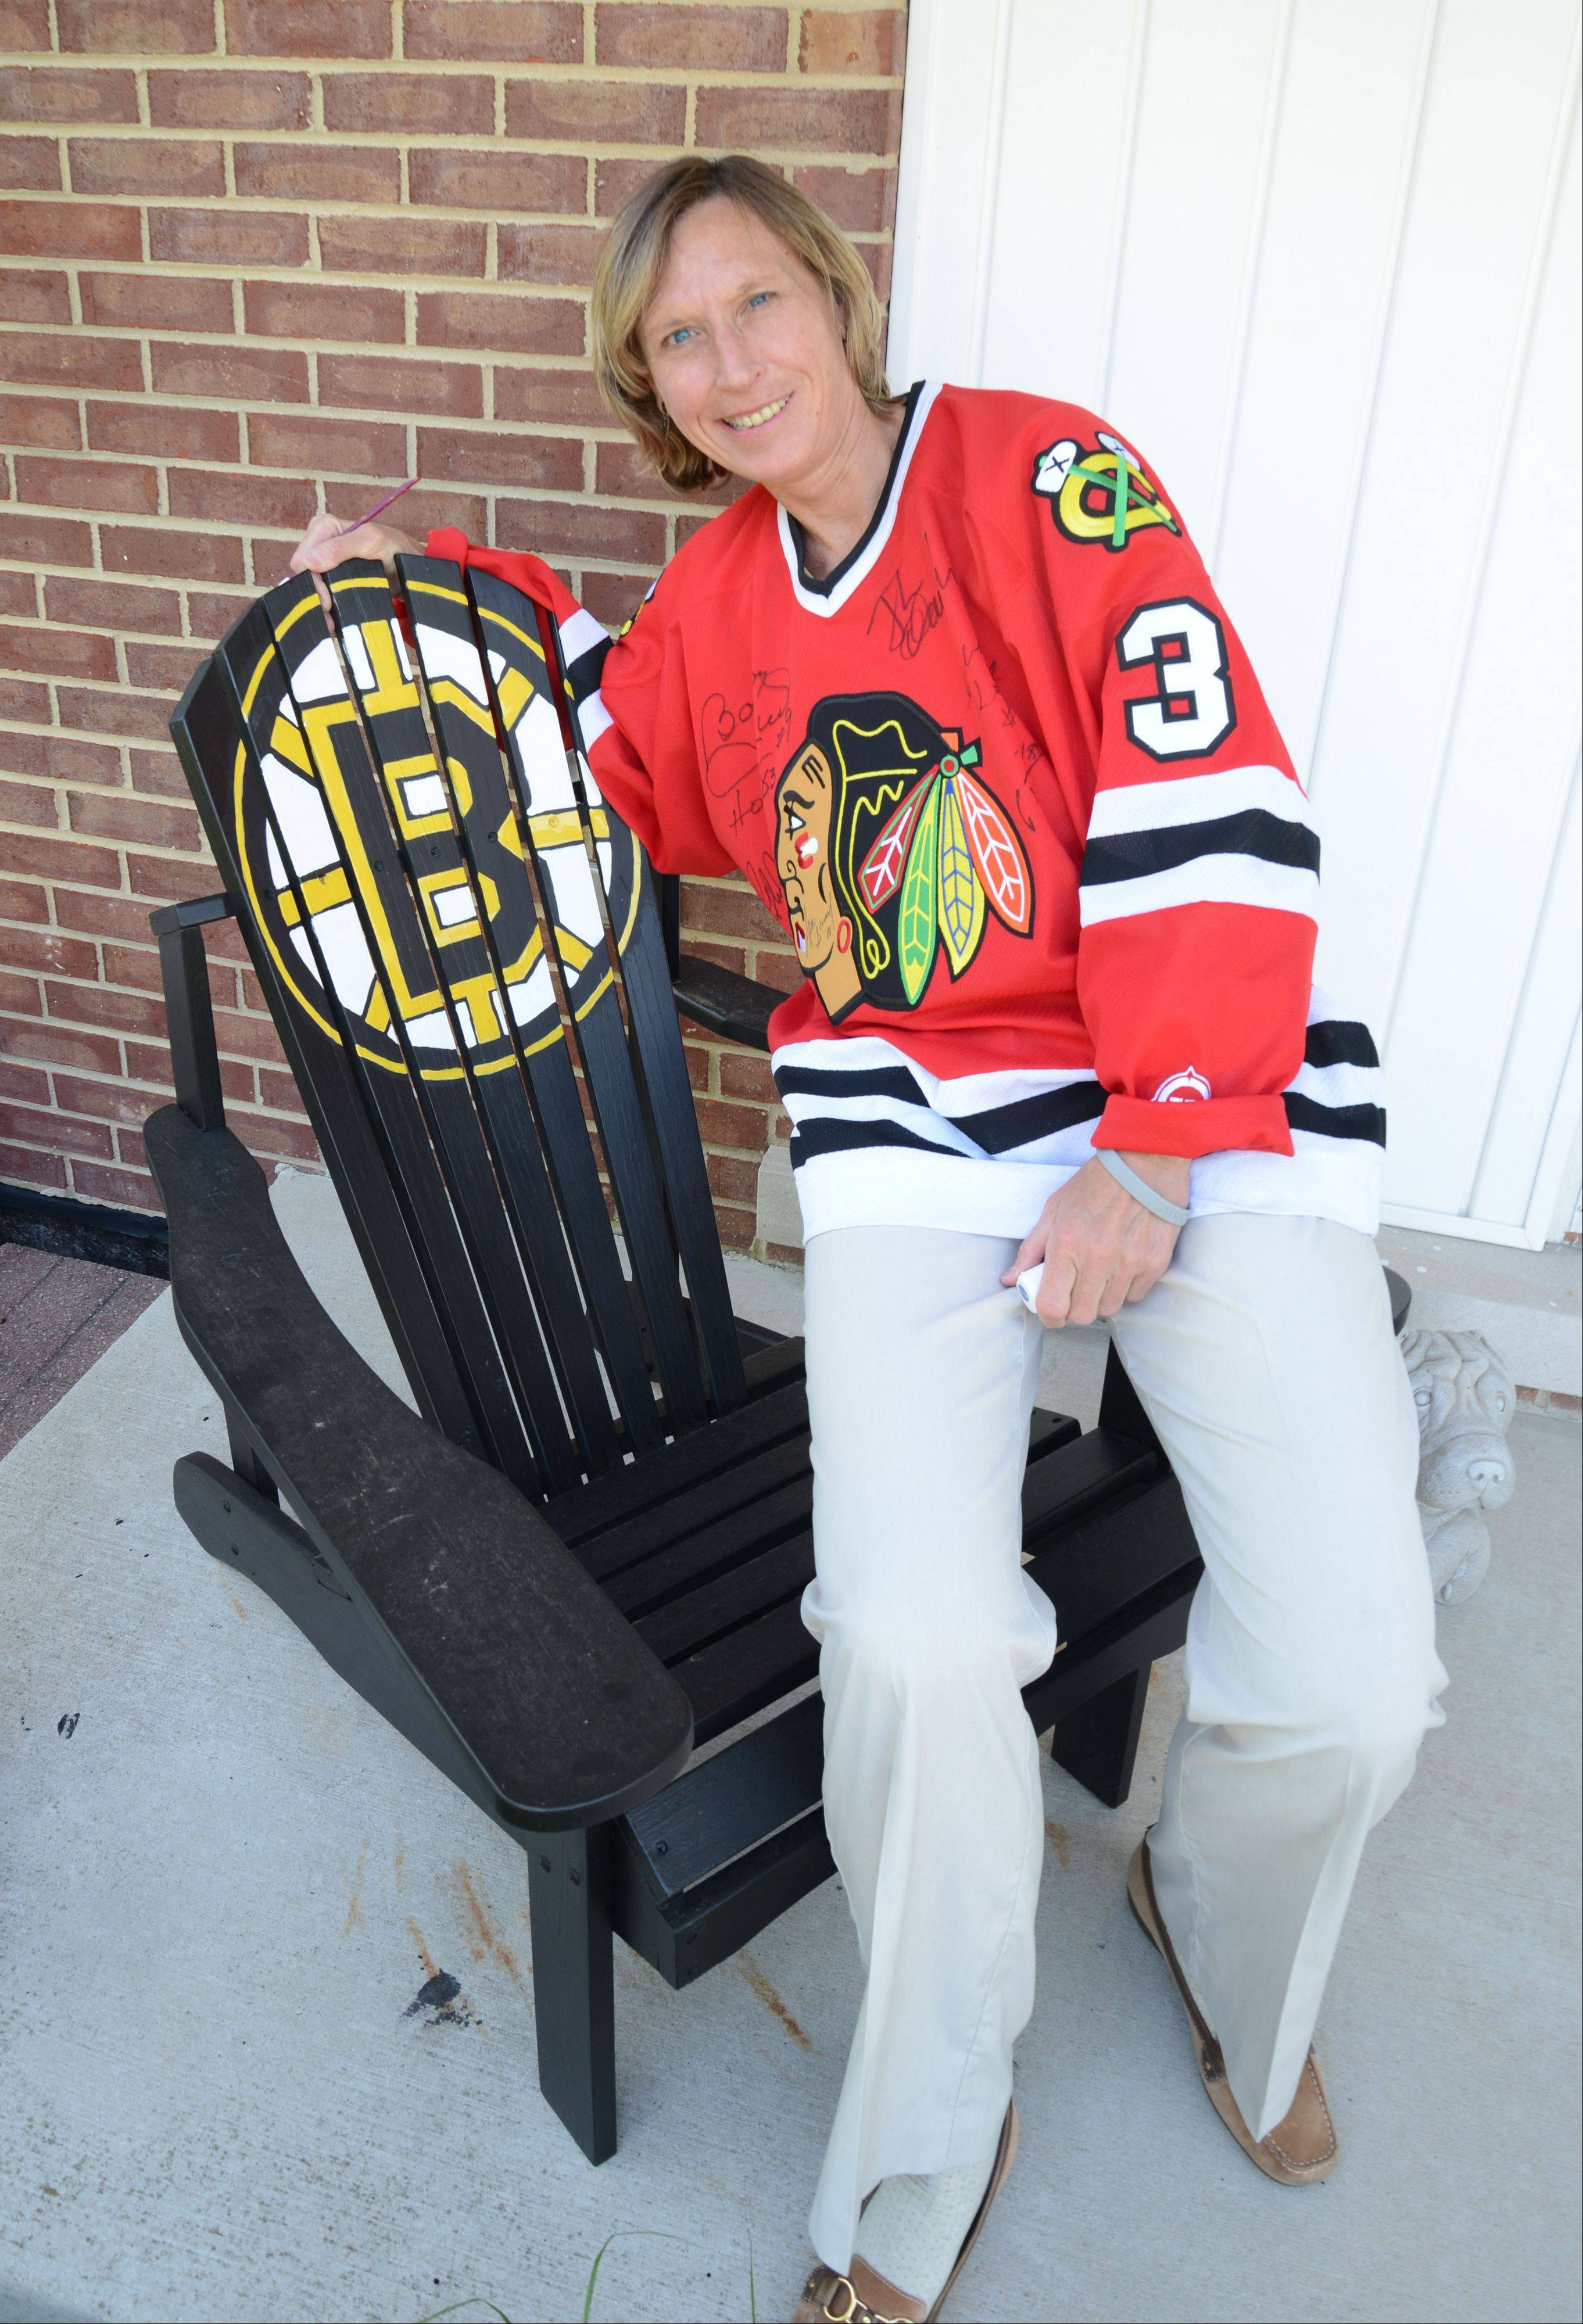 Lee Ann Stawczyk paid homage to her second-favorite team by painting the Bruins logo on this chair. She says the Hawks-Bruins matchup is the 'ultimate Stanley Cup.'